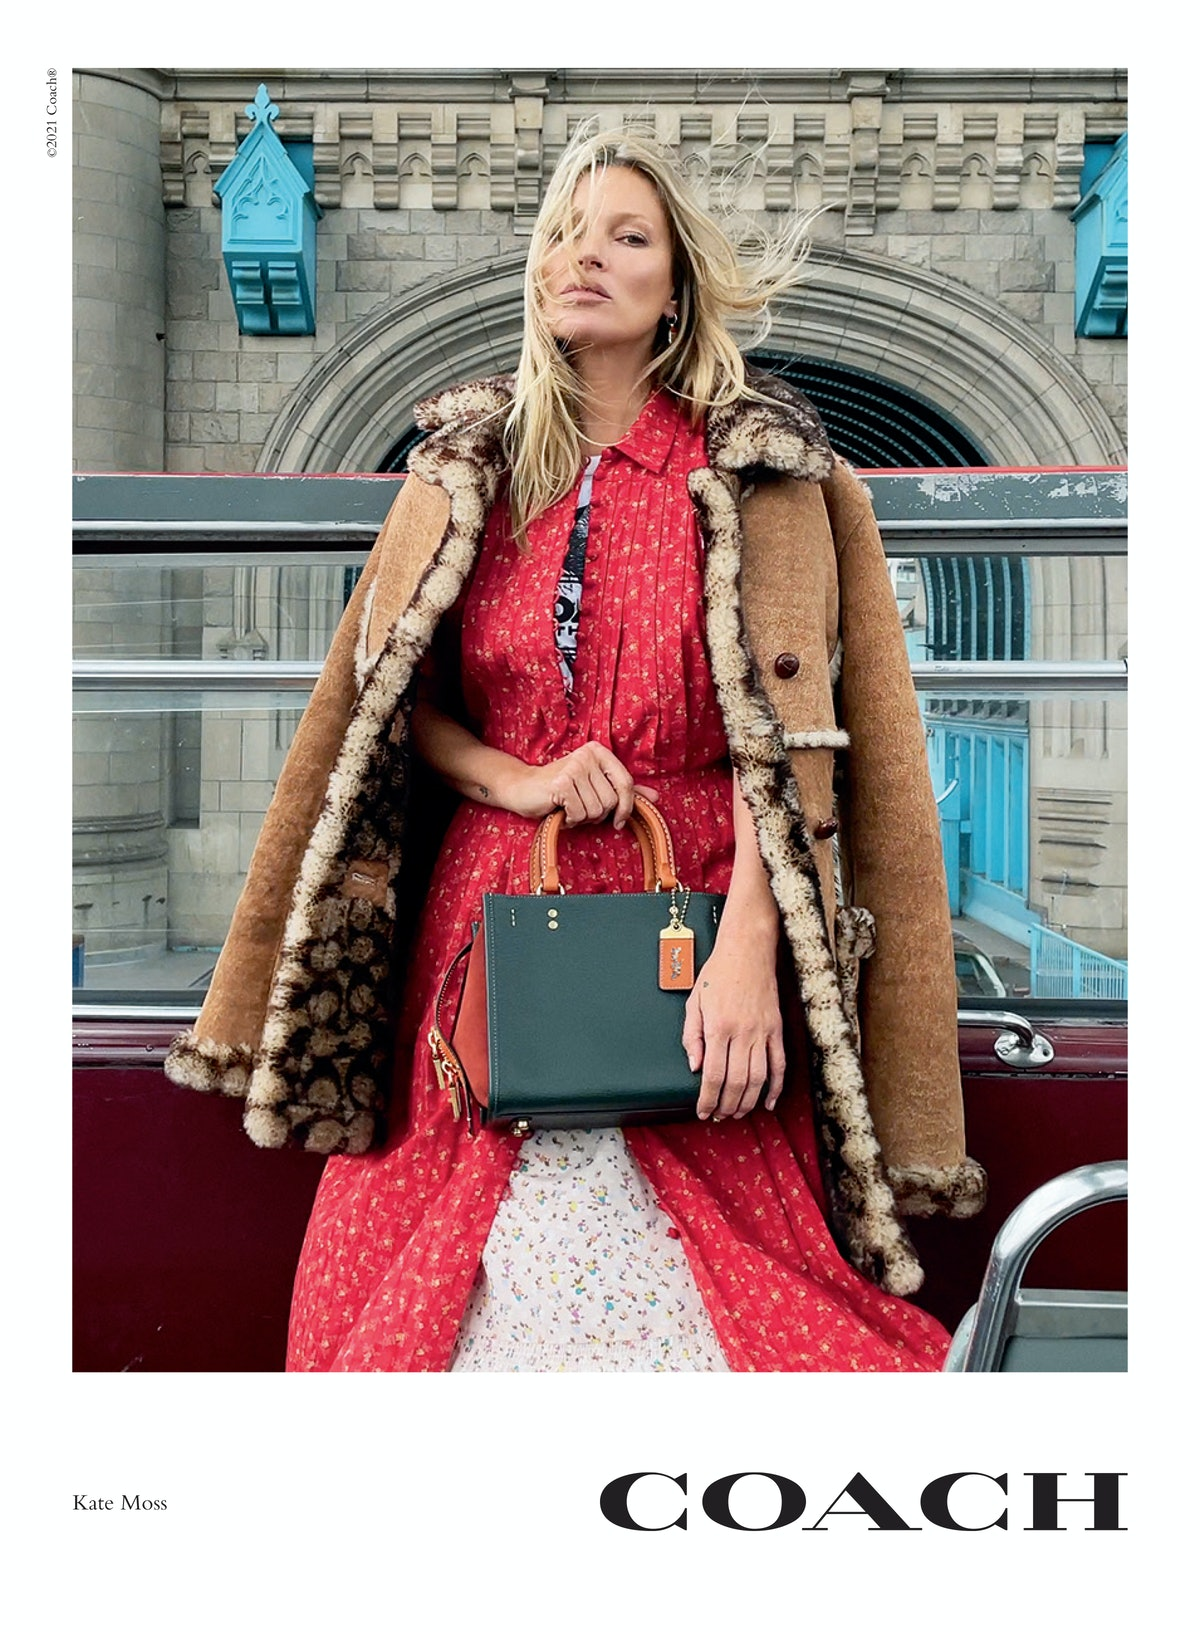 Kate Moss stars in Coach's new Rogue bag campaign, carrying a Rogue 25 handbag in green and orange c...